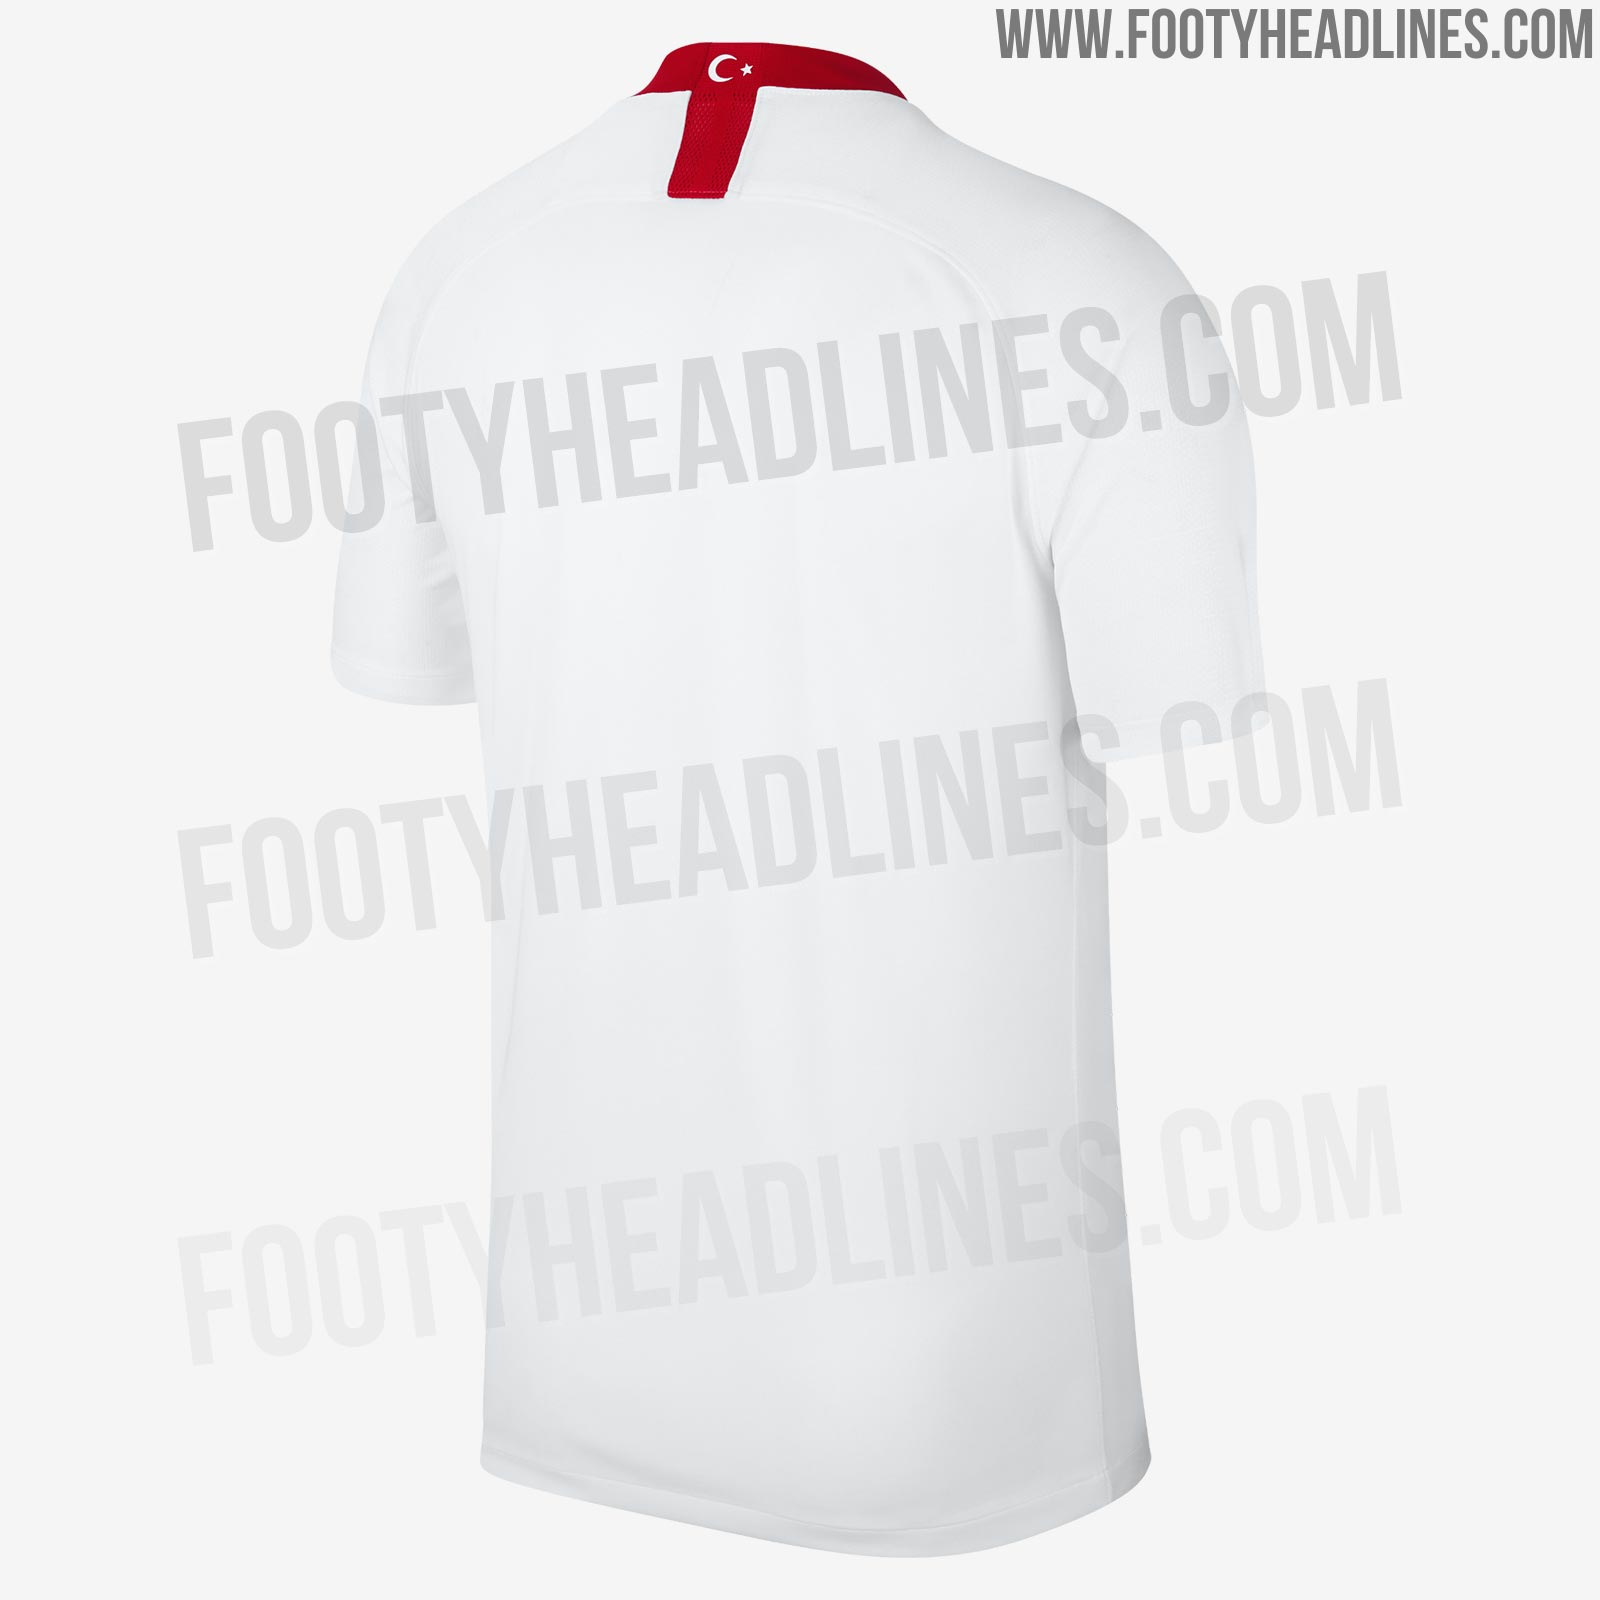 https://4.bp.blogspot.com/-_hElSarrnXs/WrAMG9msdcI/AAAAAAABd78/-cH4bt0lda0TQEmSs3JglXA81BcwTwmHwCLcBGAs/s1600/turkey-2018-home-away-kits-7.jpg